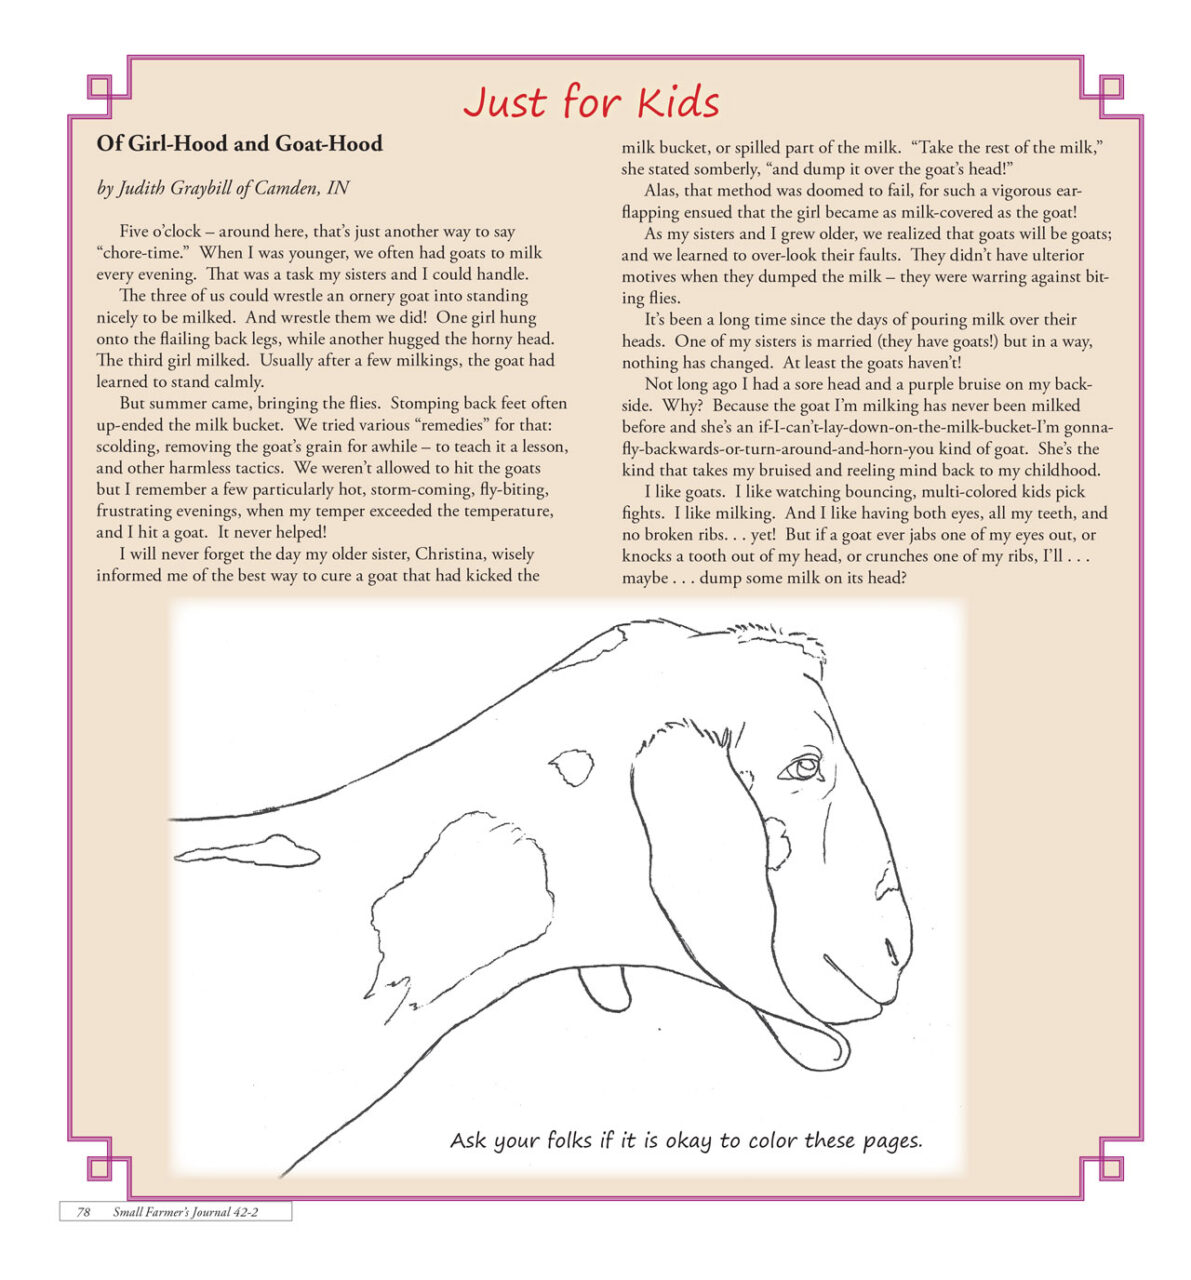 Just for Kids - 422 - Spring 2018